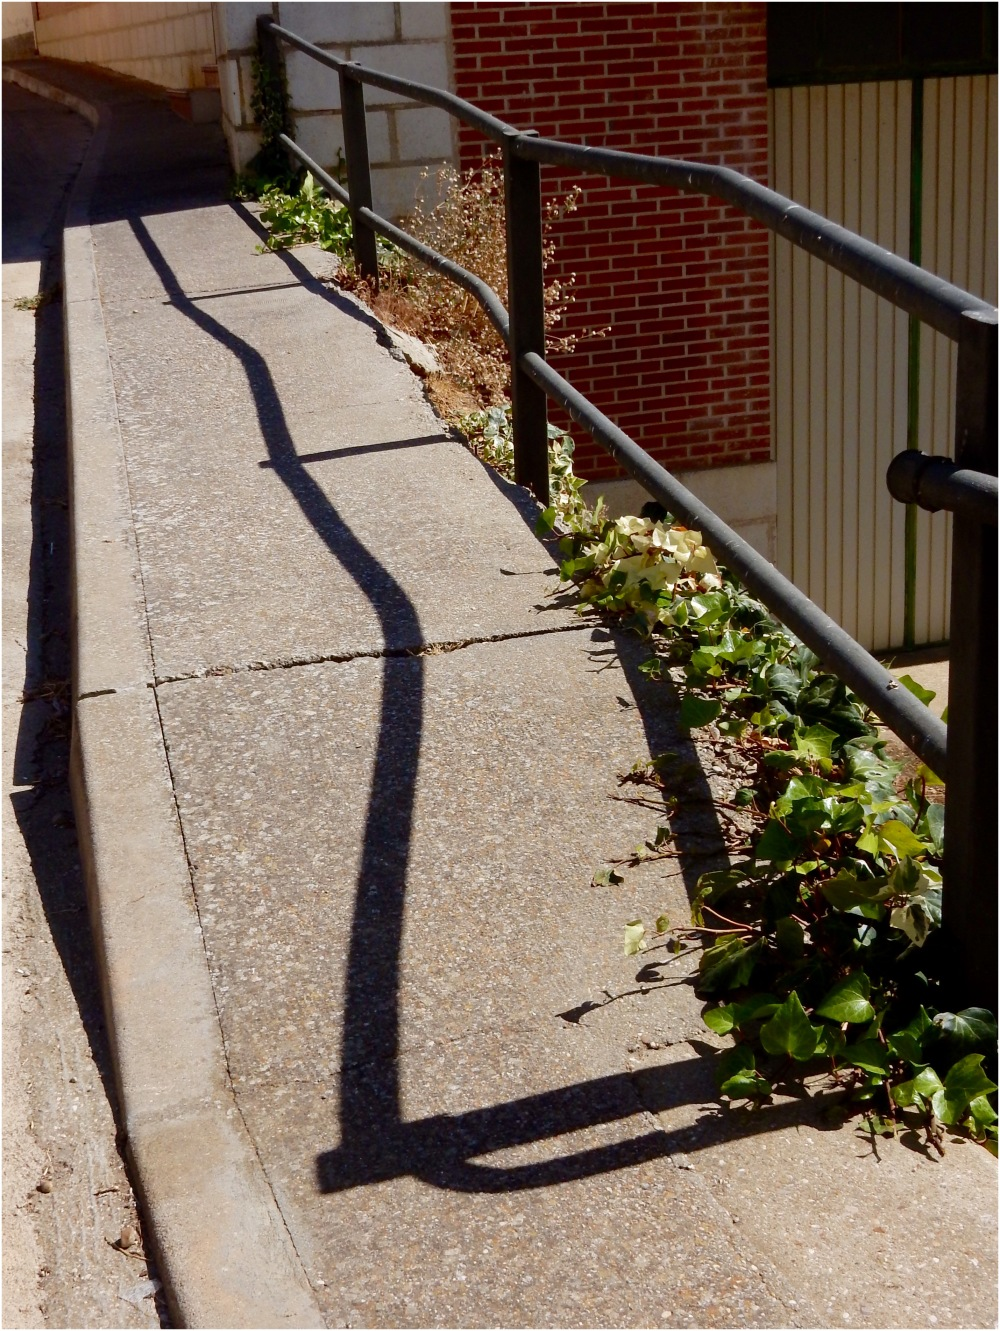 Crooked rails, crooked shadows